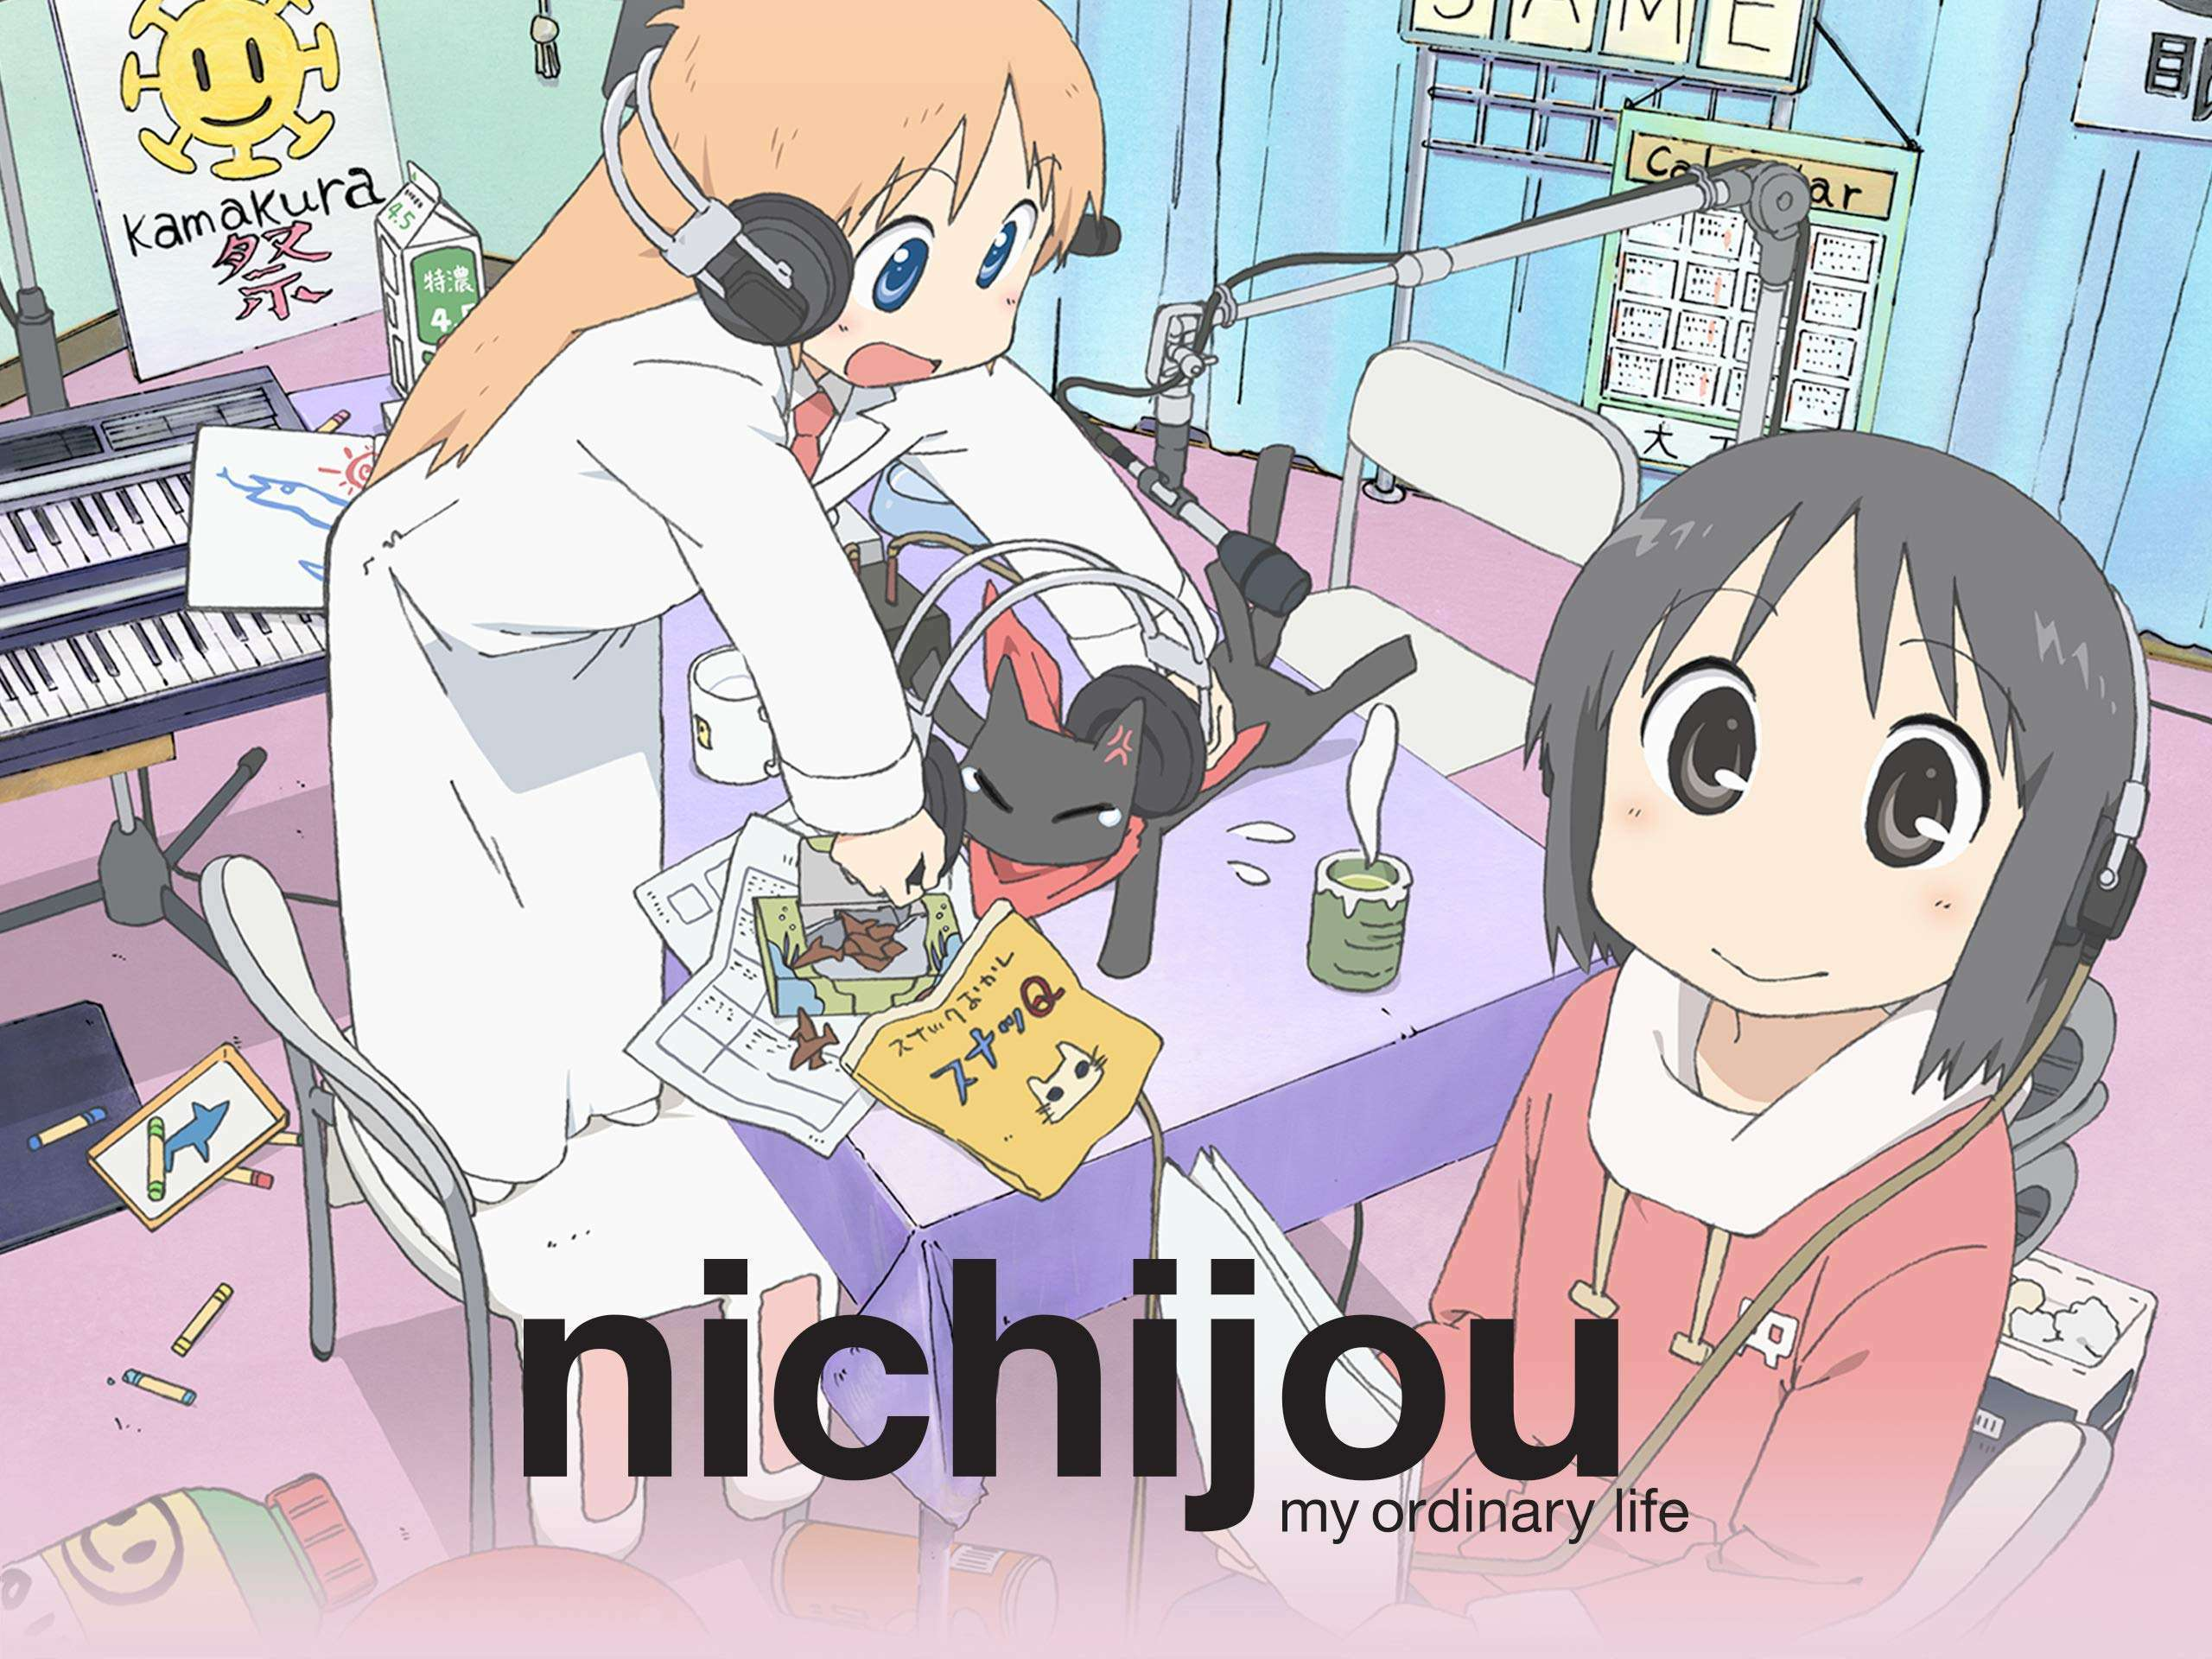 nichijou season 2 renewed or cancelled updates expectations and cast 5ffce72961a70 Nichijou Season 2: Renewed or Cancelled? Updates, Expectations and Cast